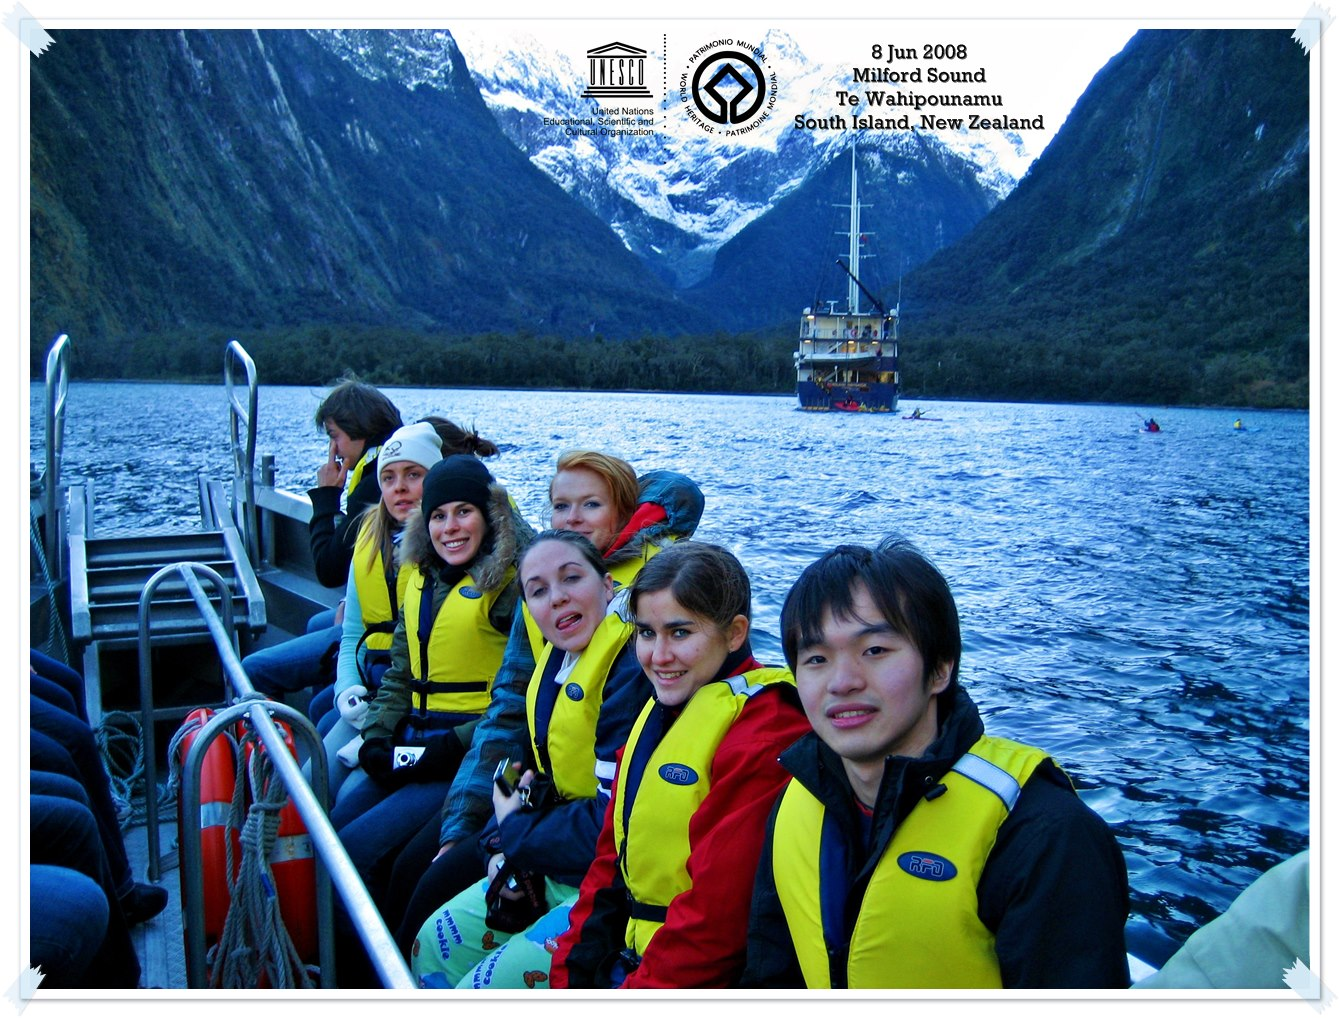 Boating at Milford Sound New Zealand Thomas shaw Te Wahipounamu – South West New Zealand